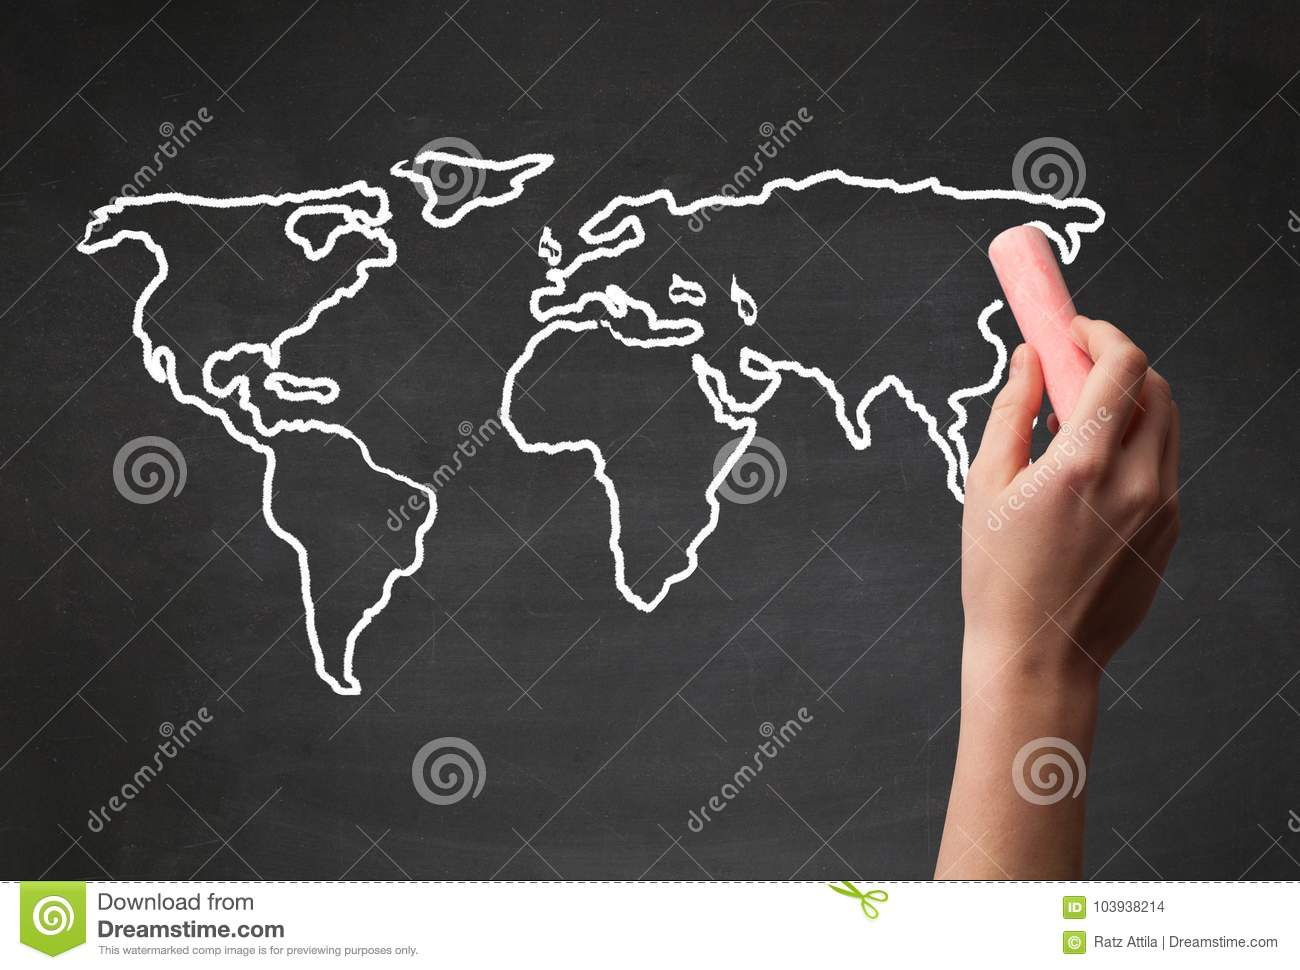 Adult drawing world map on chalkboard stock photo image of download adult drawing world map on chalkboard stock photo image of illustration europe gumiabroncs Image collections